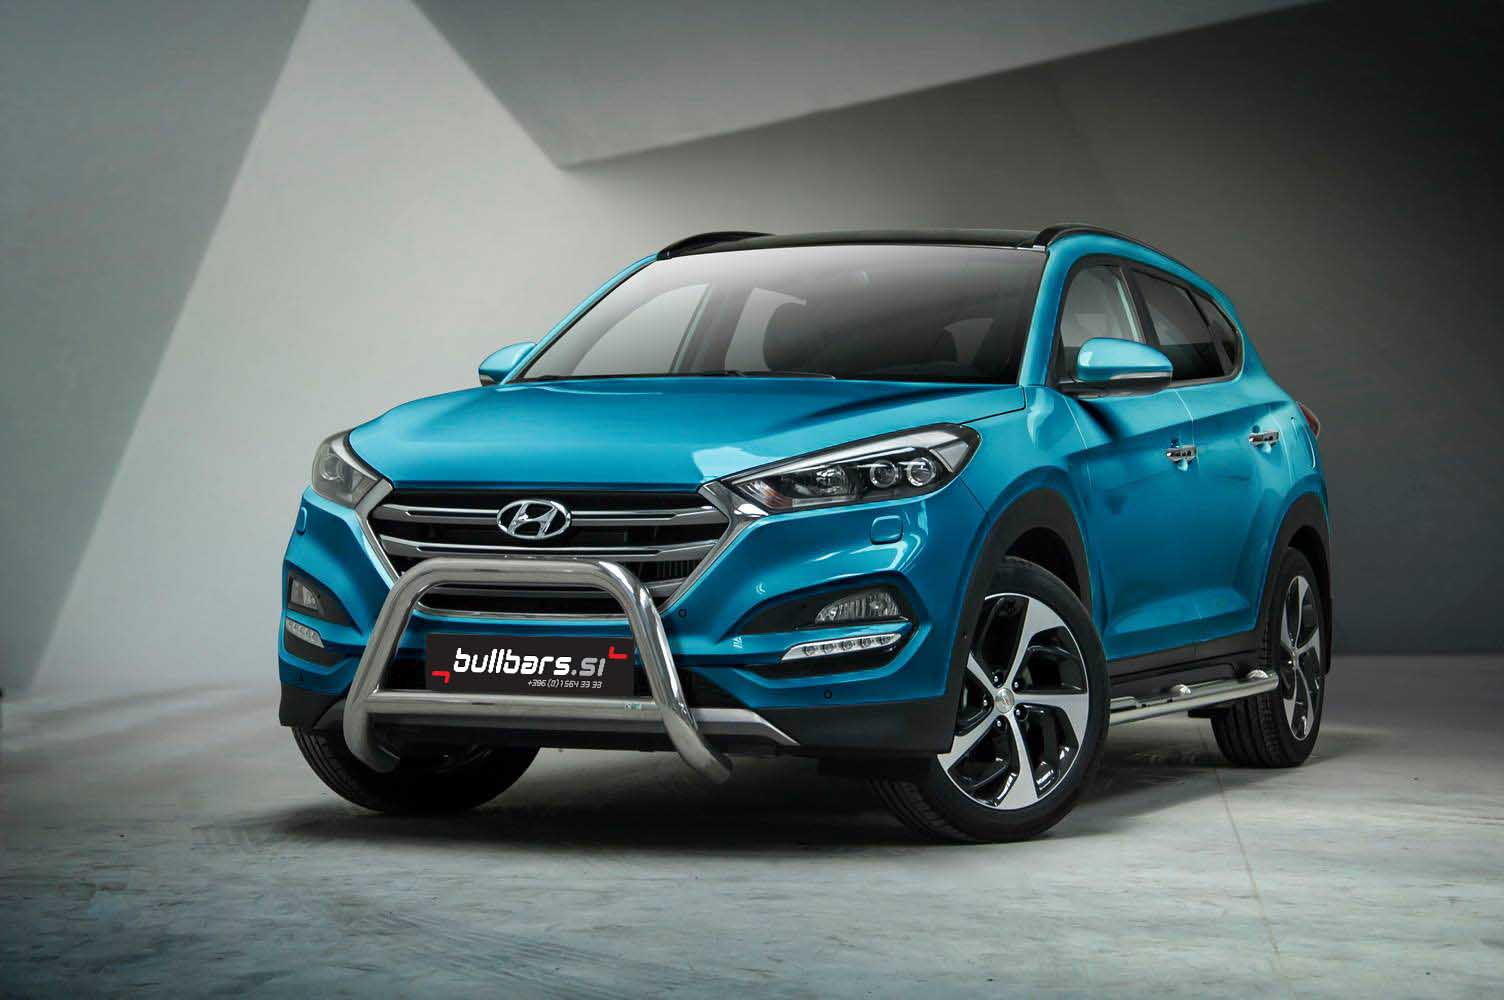 hyundai tucson 2015 eu inox bull bar fi70 s pre no cevjo. Black Bedroom Furniture Sets. Home Design Ideas